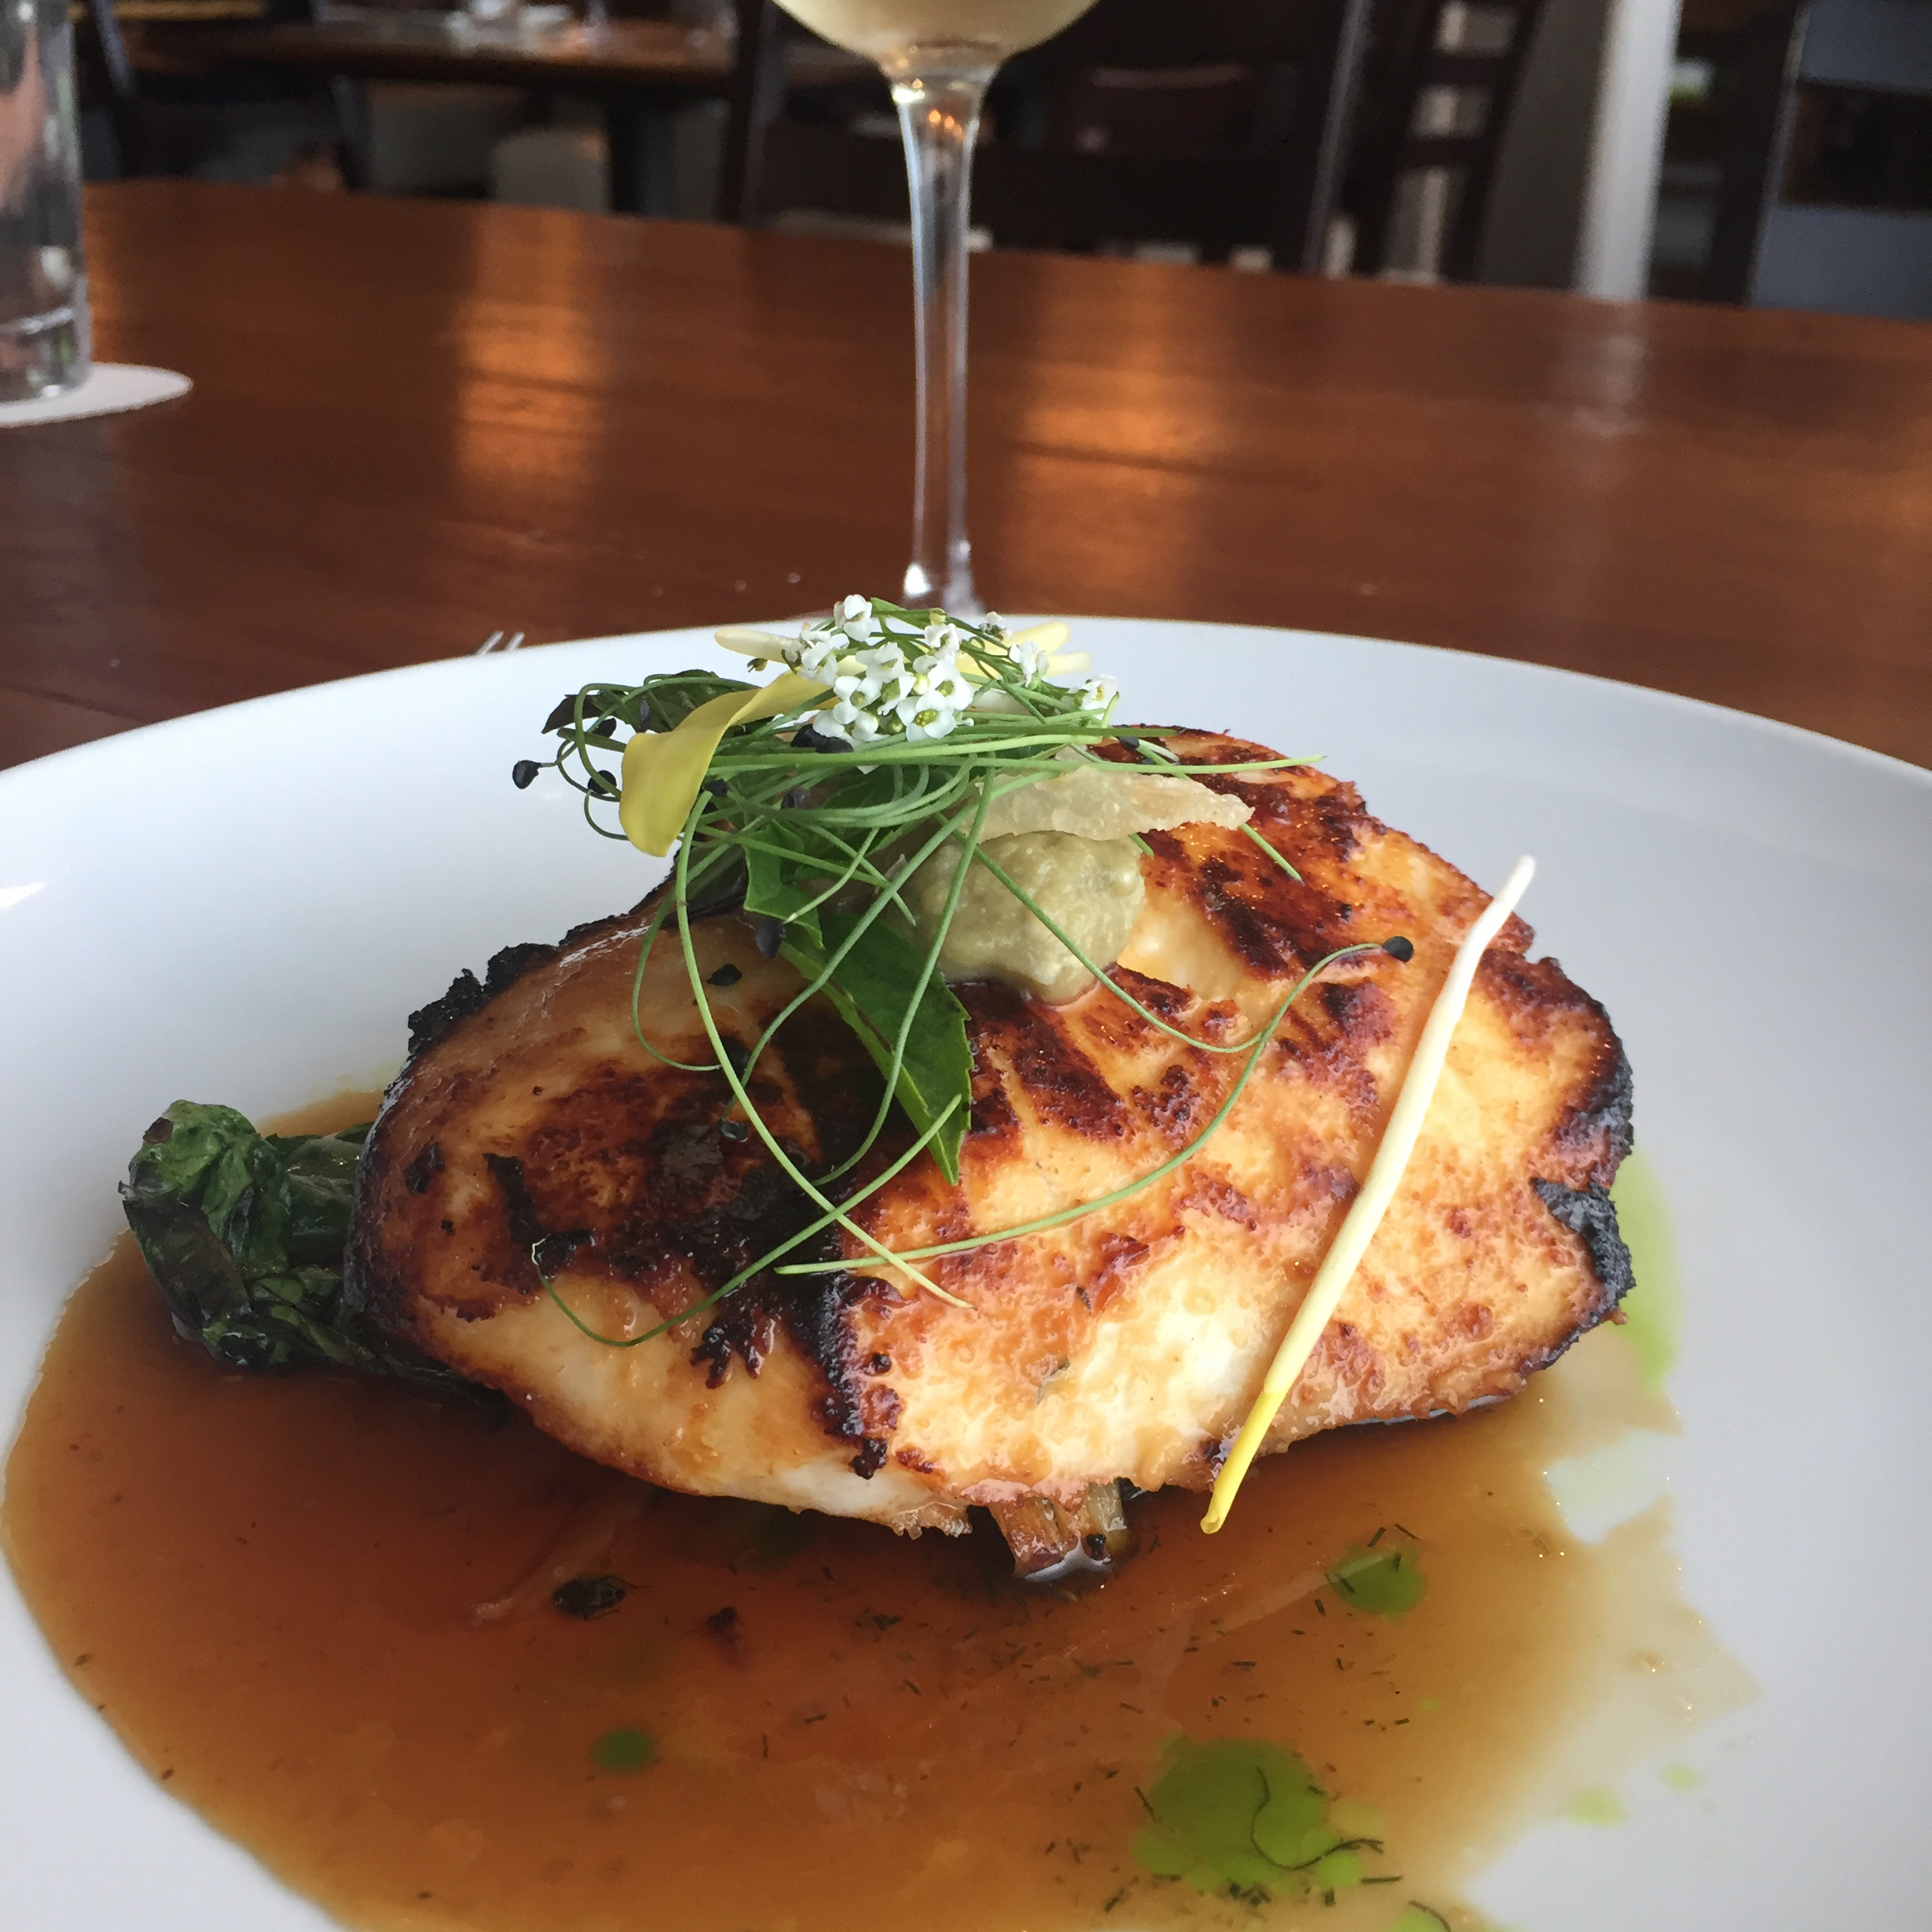 "Butterfish, also known as black cod, is pan-fried in a miso-based marinade and served with lemon beurre blanc, white wine vinegar, and sweet soy sauce. ""This rich miso-crusted butterfish melts in your mouth,"" says Angela Wolery-Garcia. ""I always serve with steamed rice."""